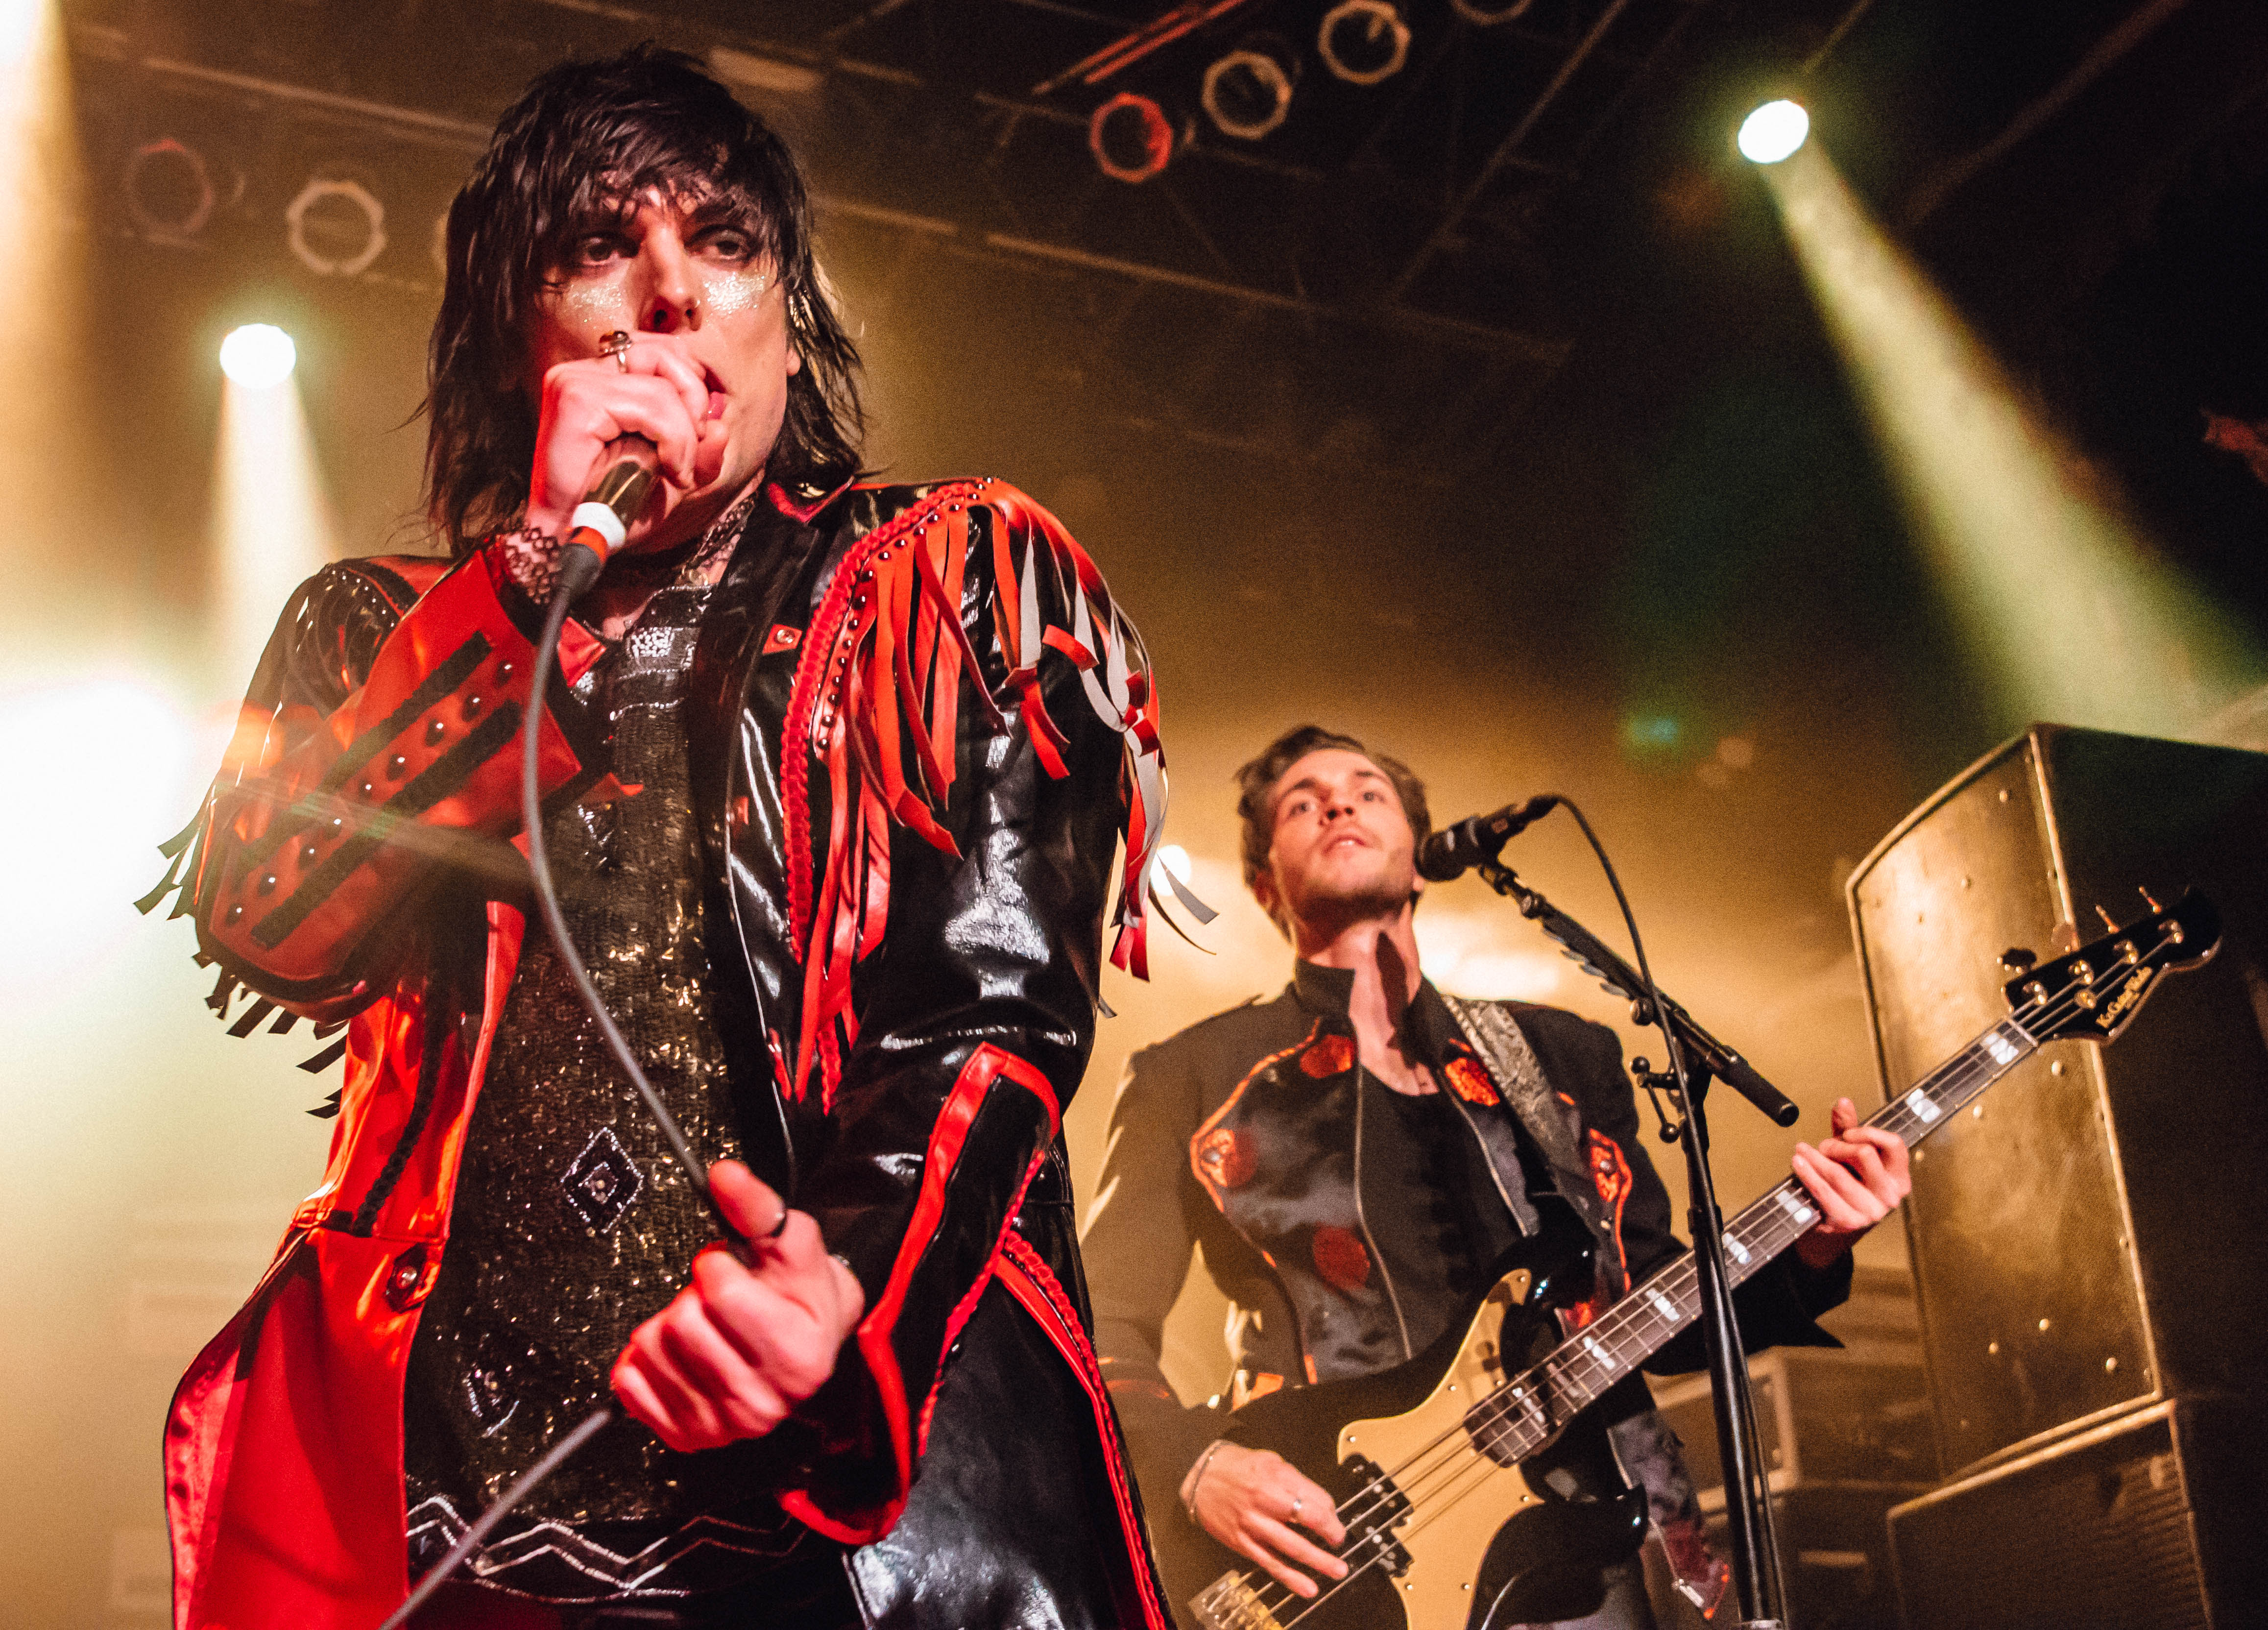 REVIEW: The Struts channel the glam gods in Chicago